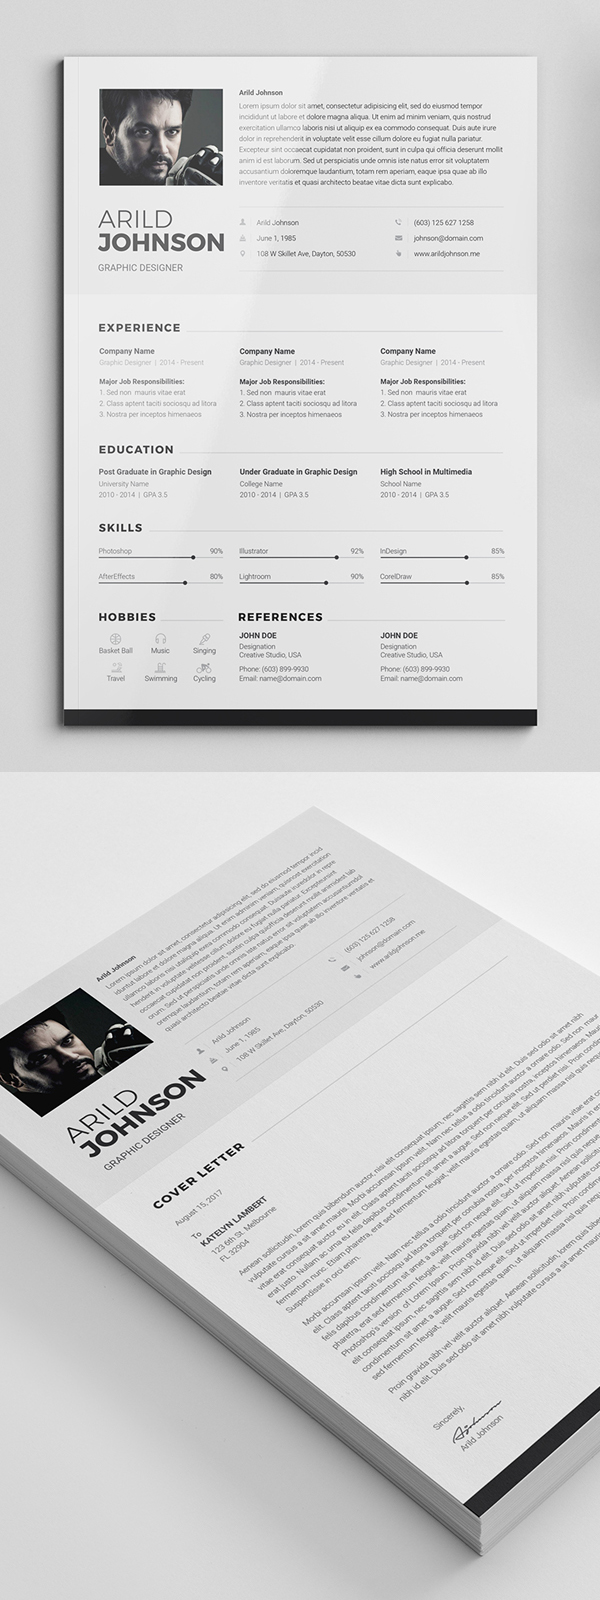 Freebie: Creative Simple Resume Template & Cover Letter